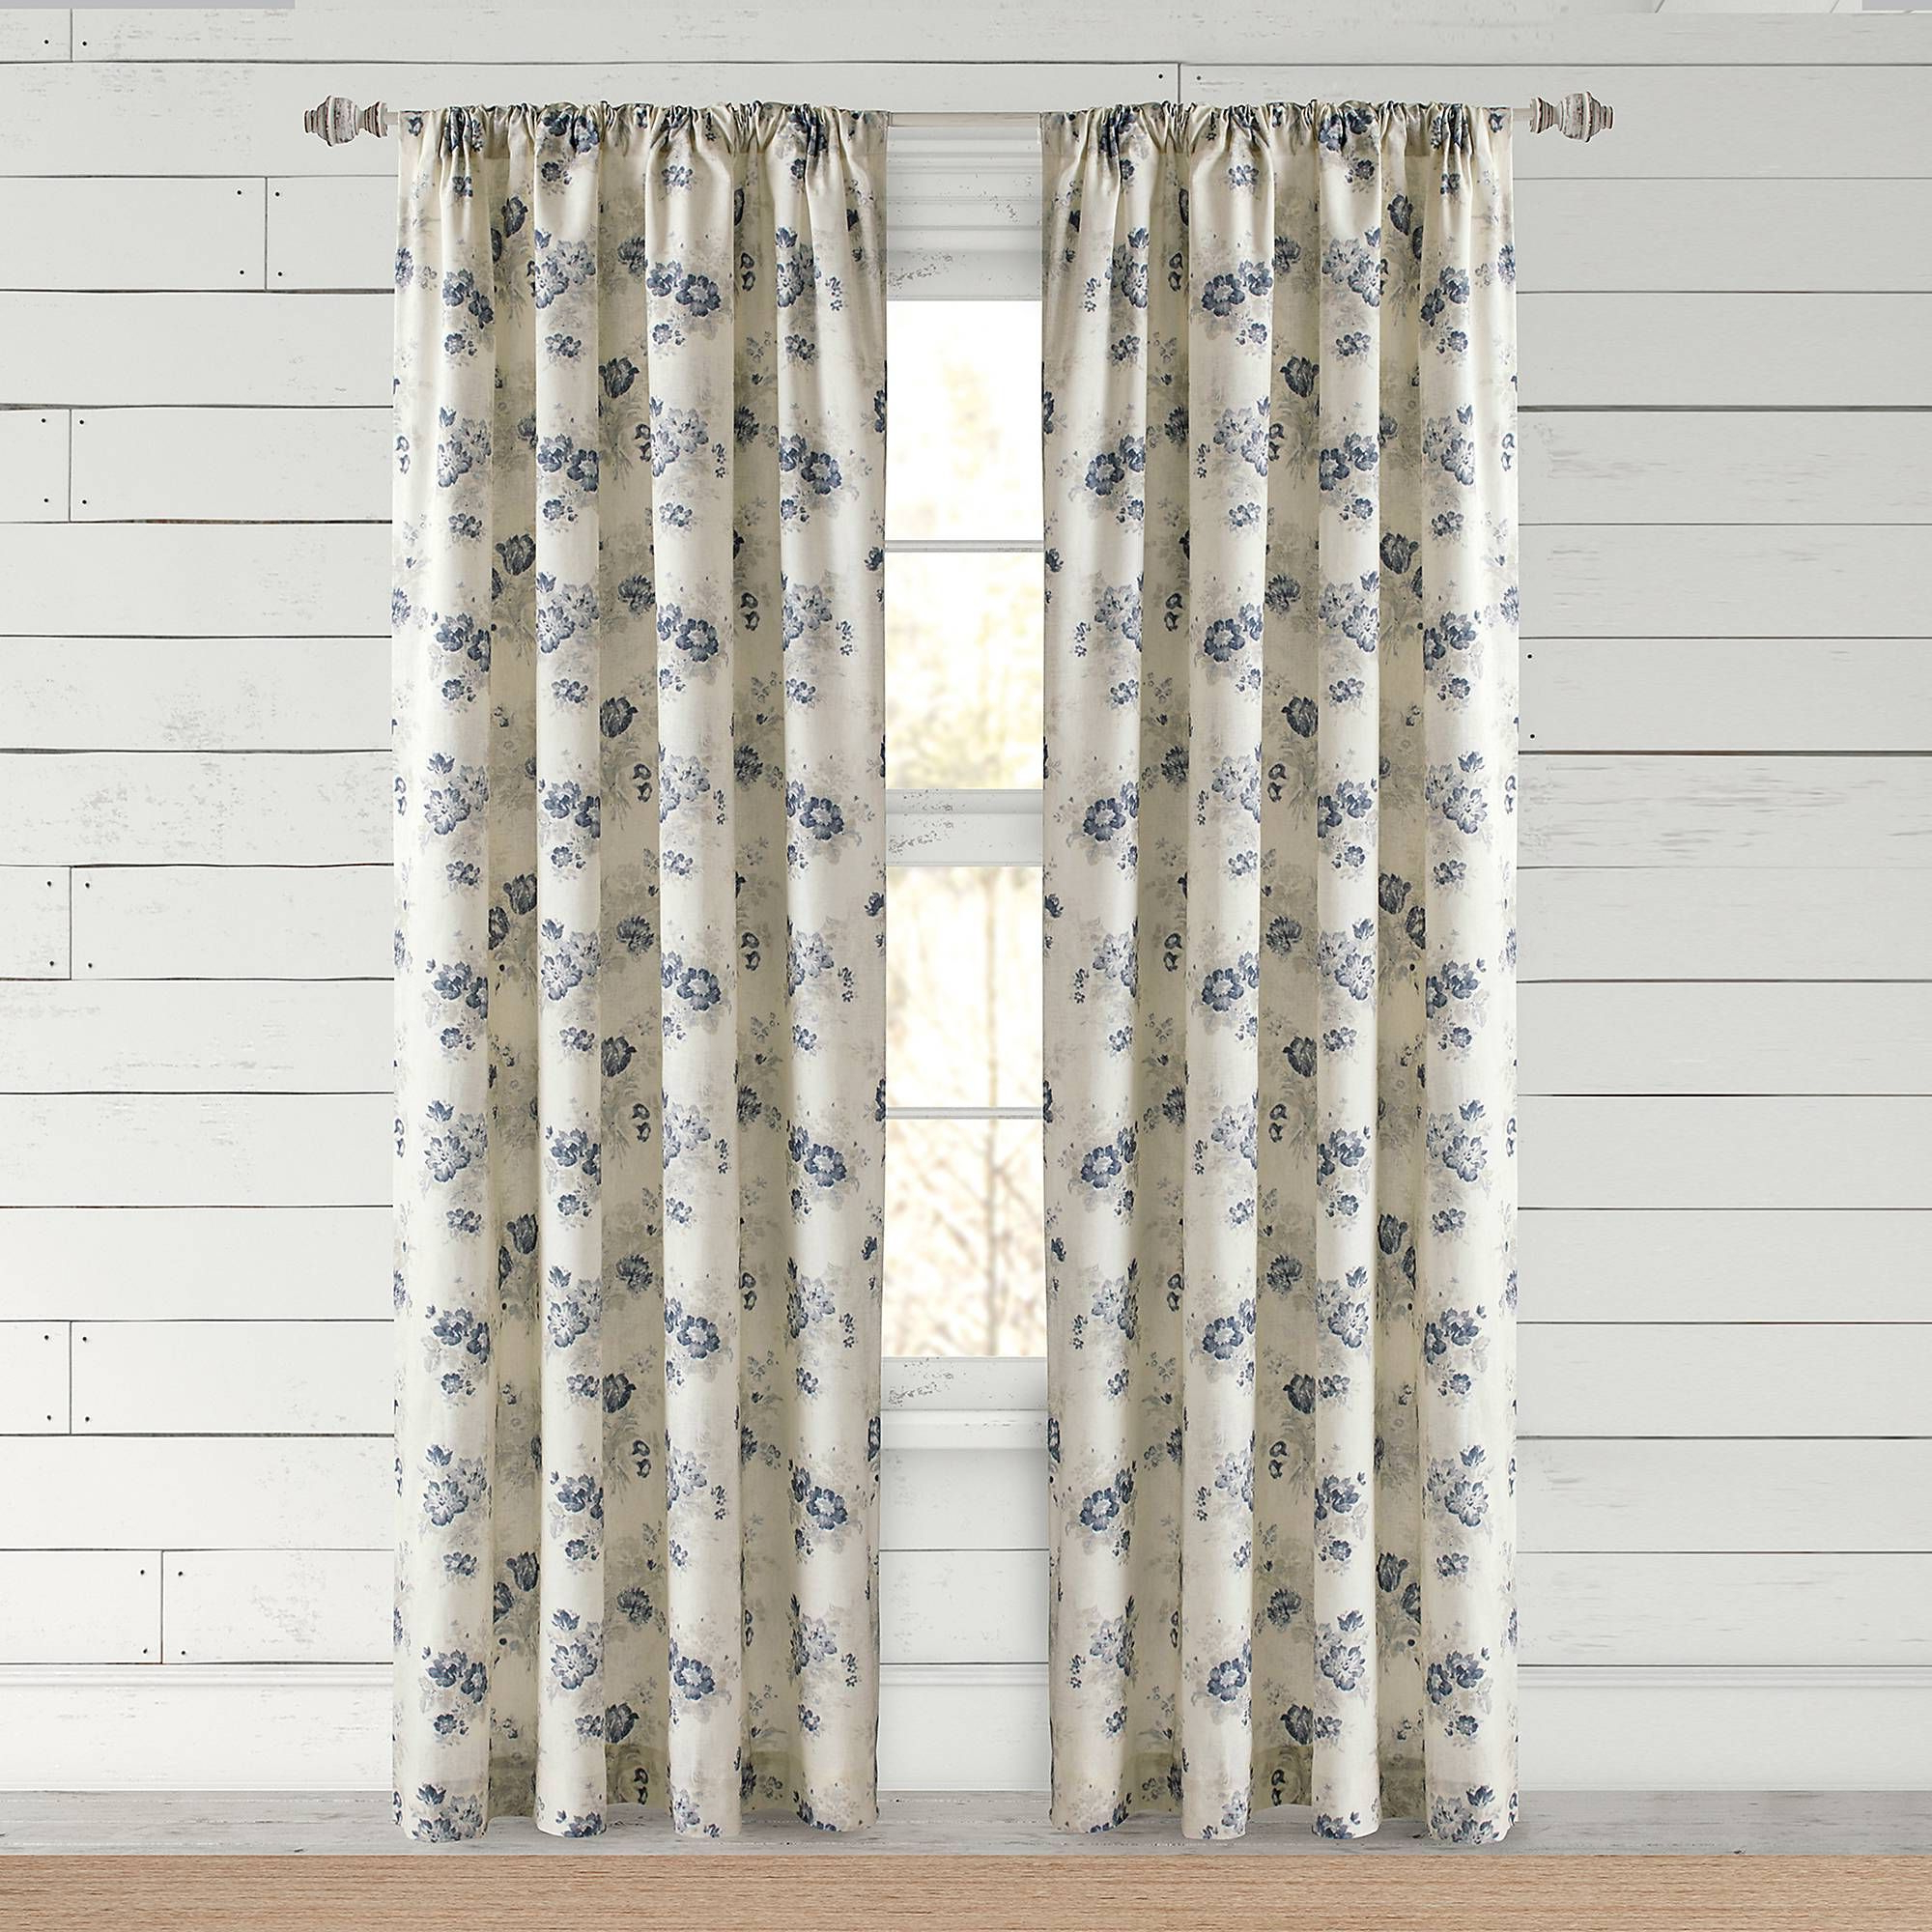 Bee & Willow™ Home Clearwell Rod Pocket Window Curtain Panel Within Newest Willow Rod Pocket Window Curtain Panels (View 5 of 20)